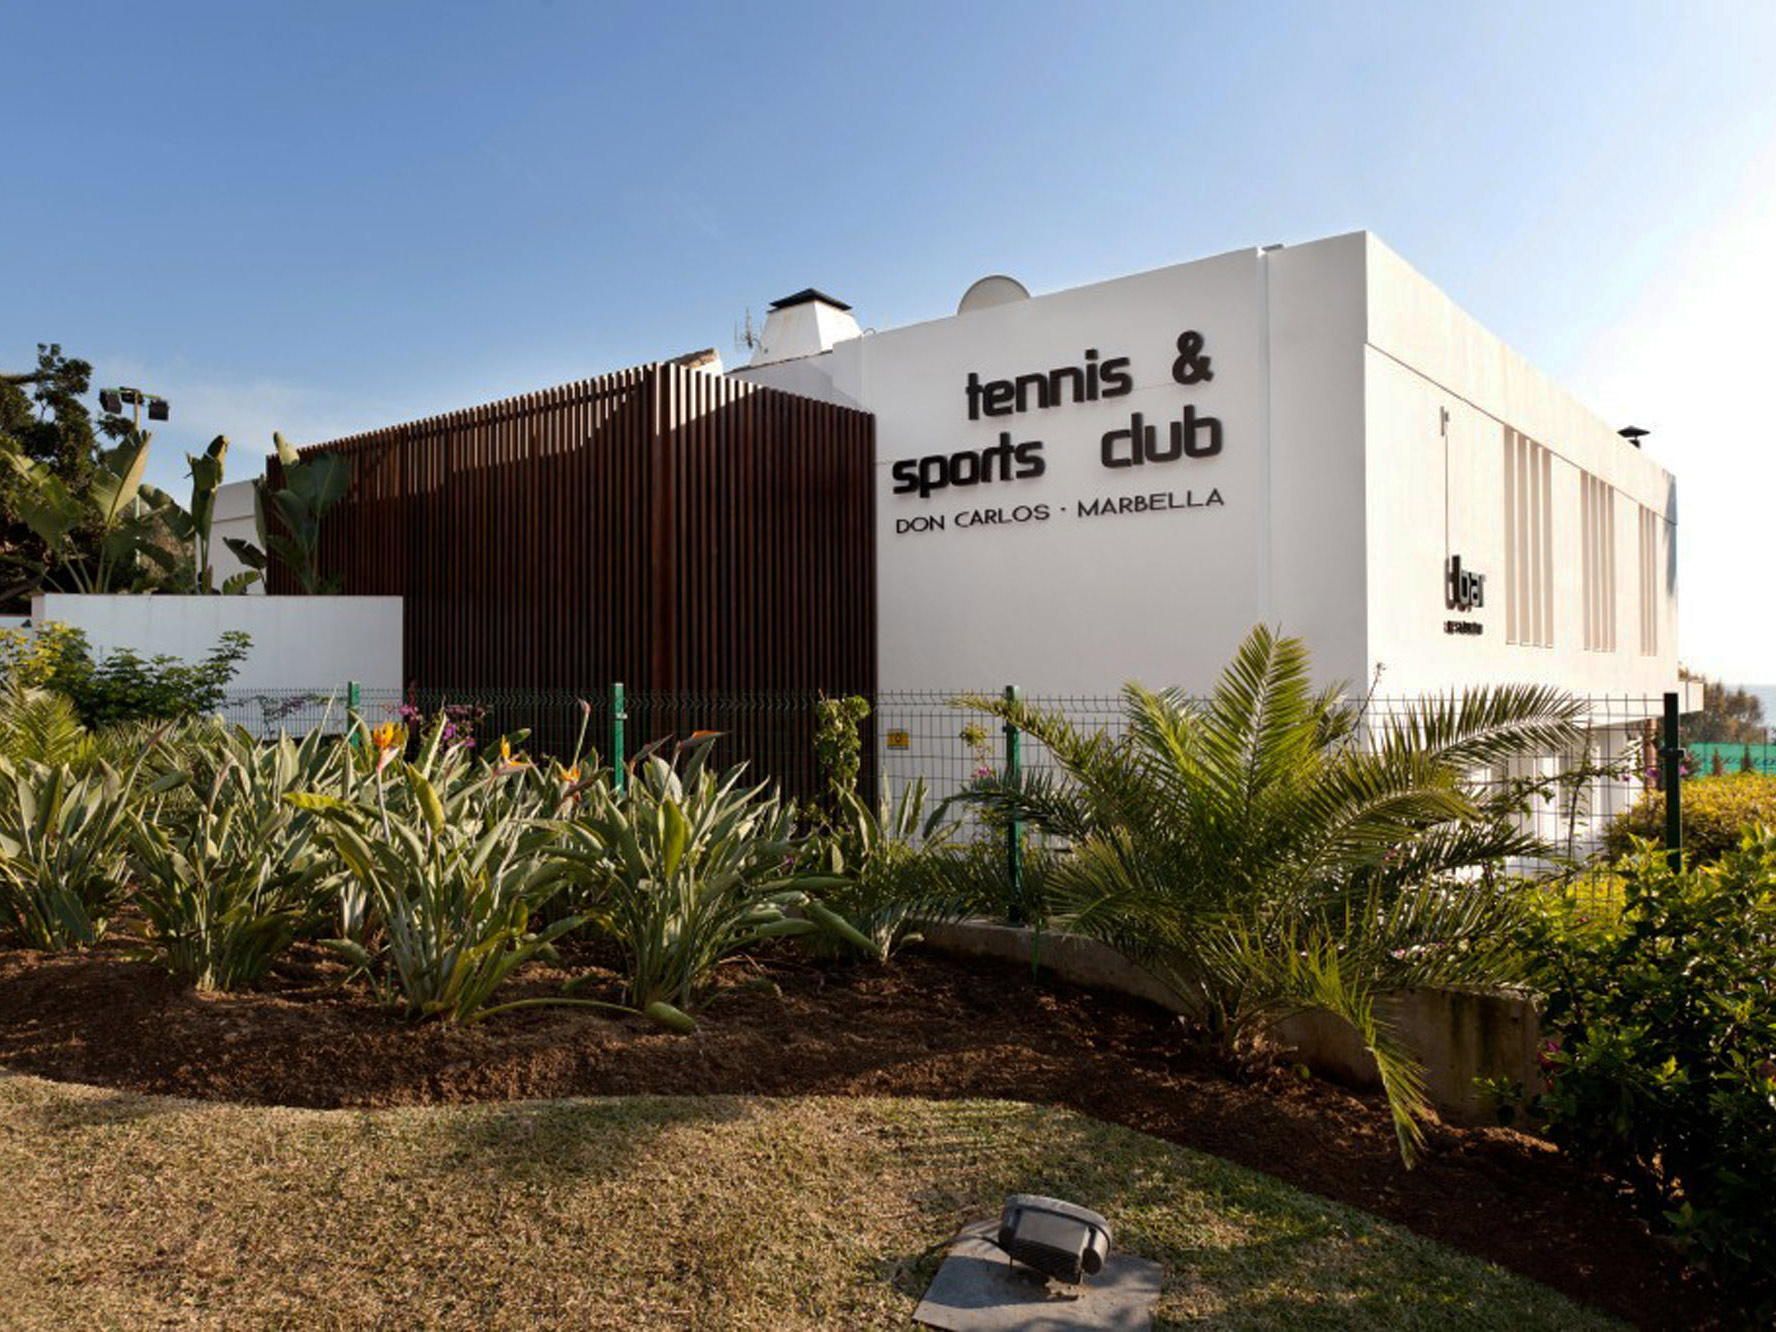 Tennis & Sports Club Don Carlos | Interioristas Barcelona | MOEM Studio